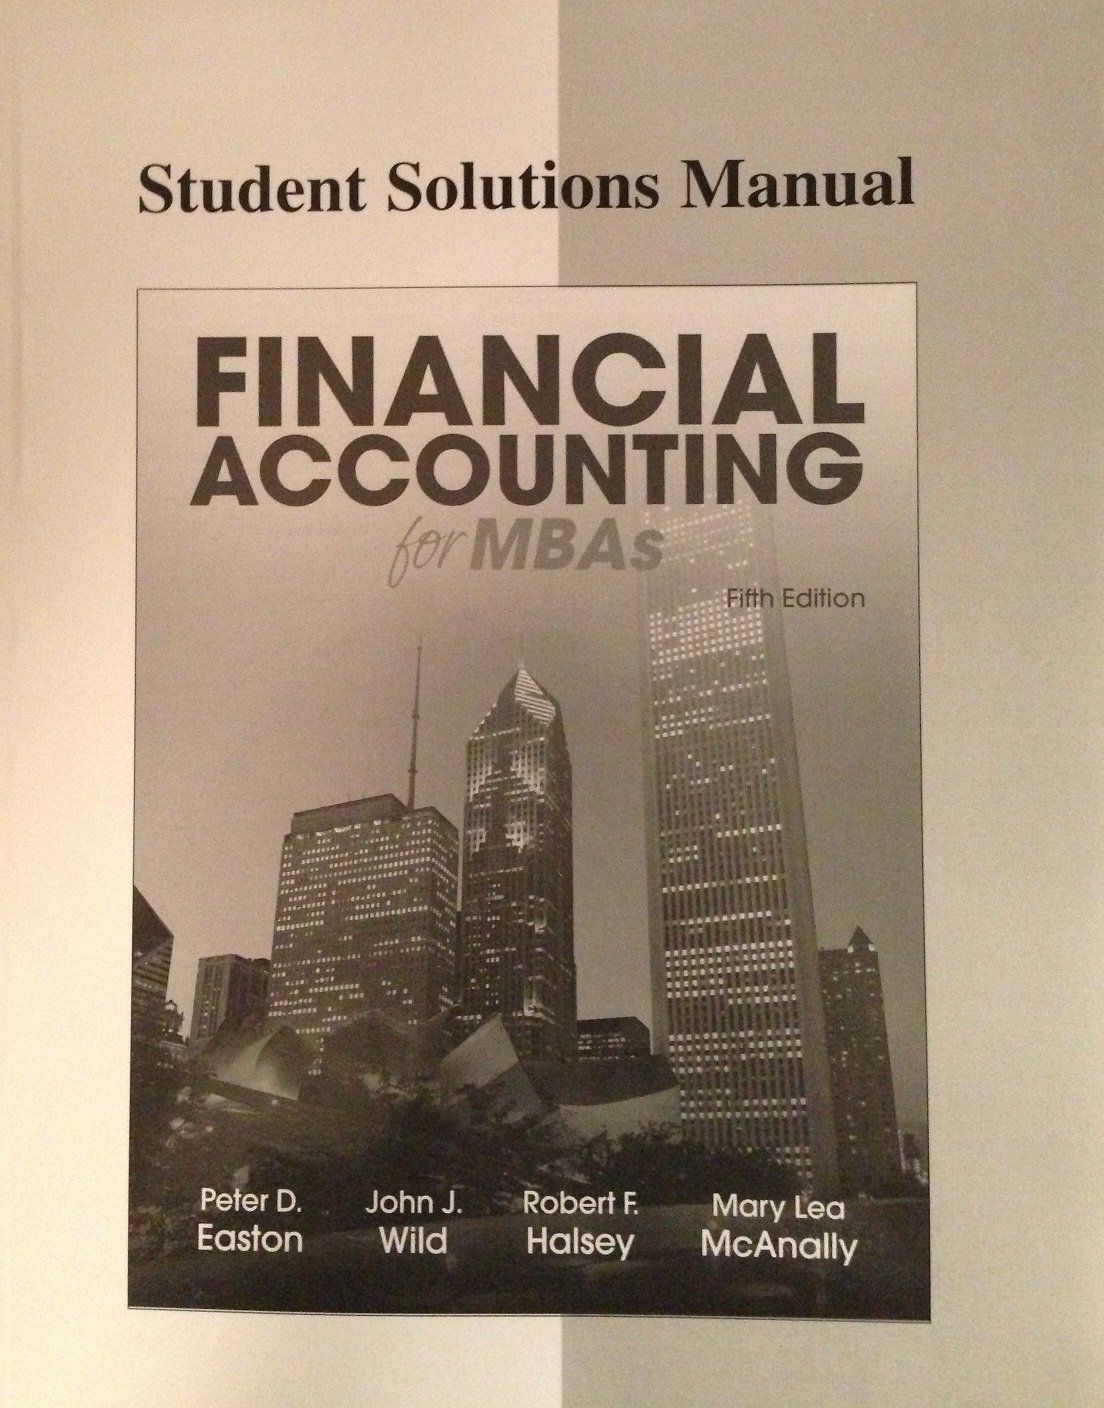 Student Solution Manual for Financial Accounting for MBAs, 5th Edition:  9781618530196: Amazon.com: Books